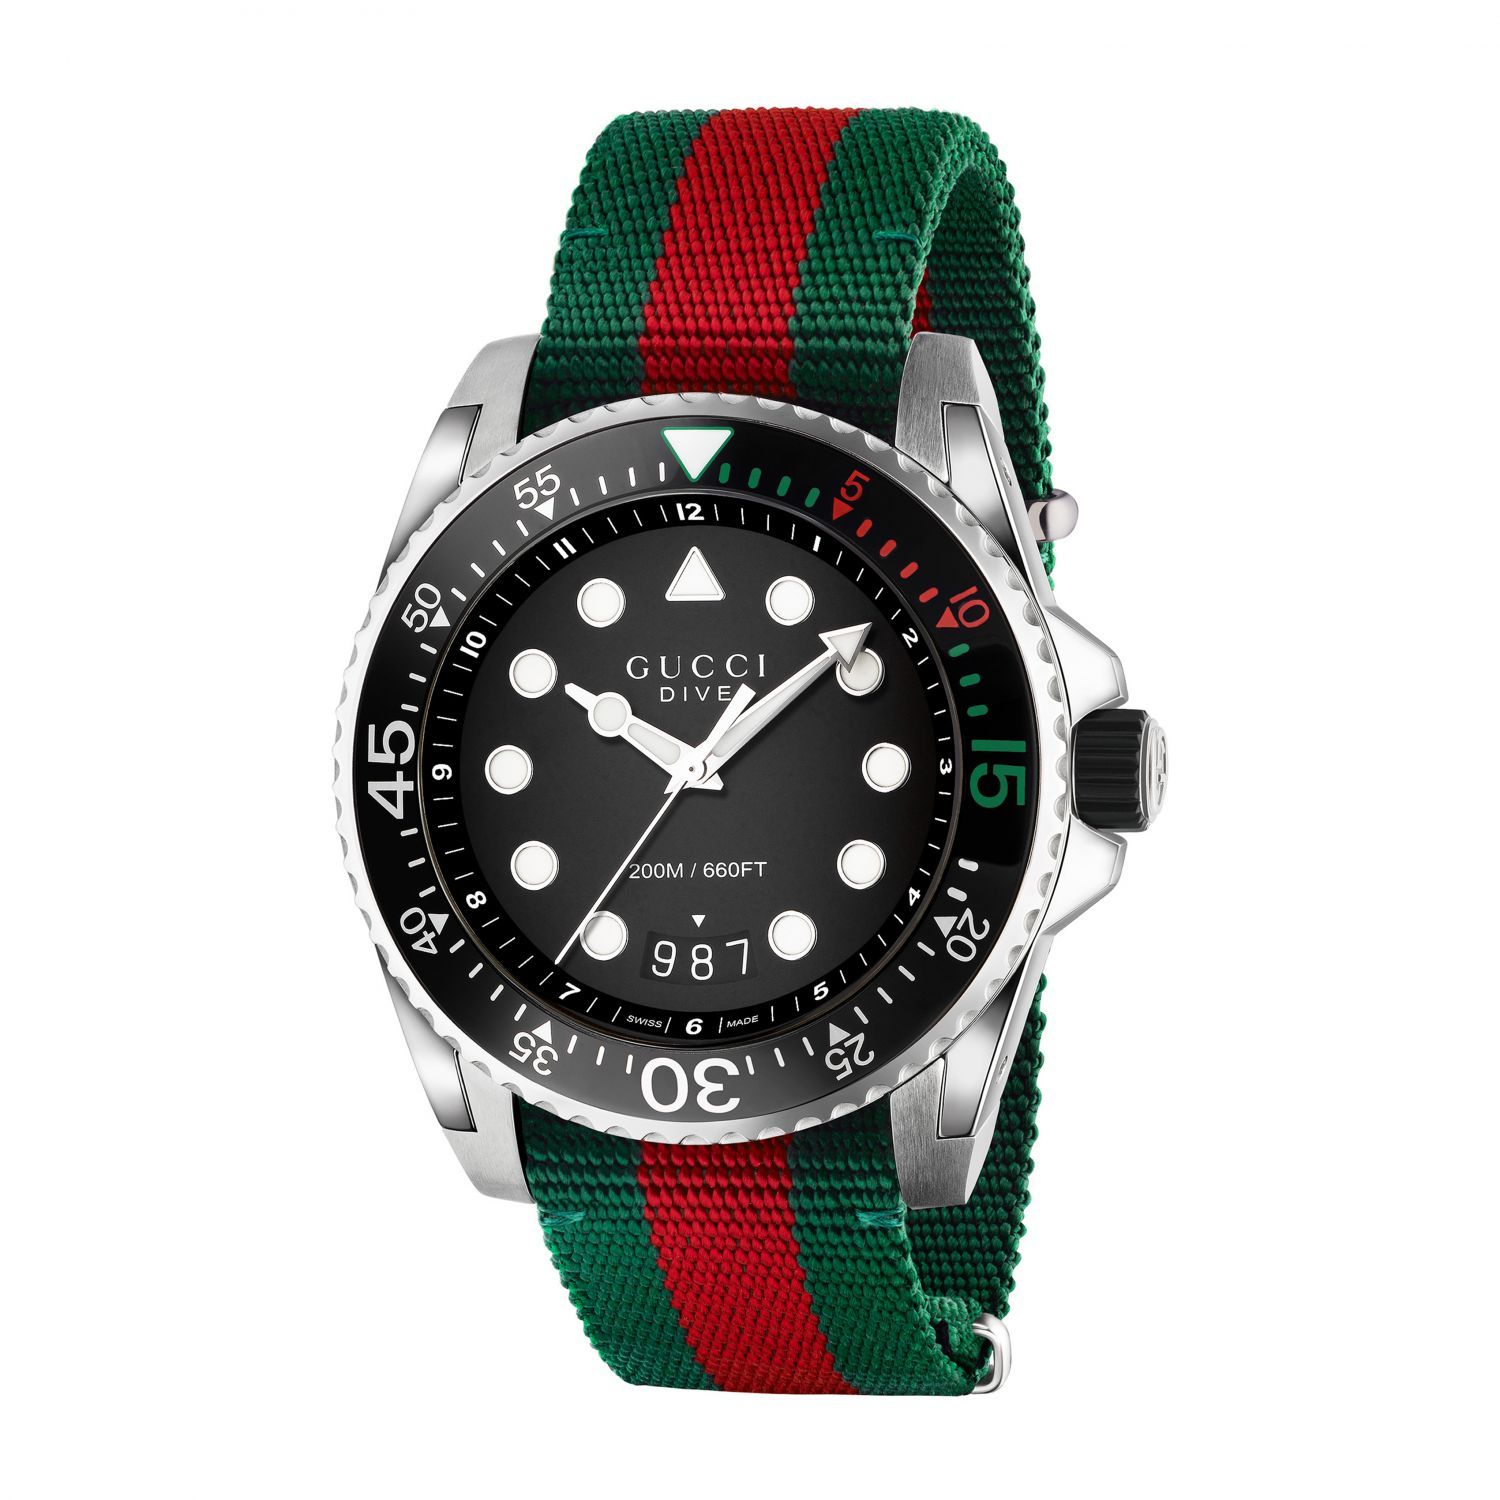 Watch Gucci: Watch with Gucci Web strap and sporty case black 1